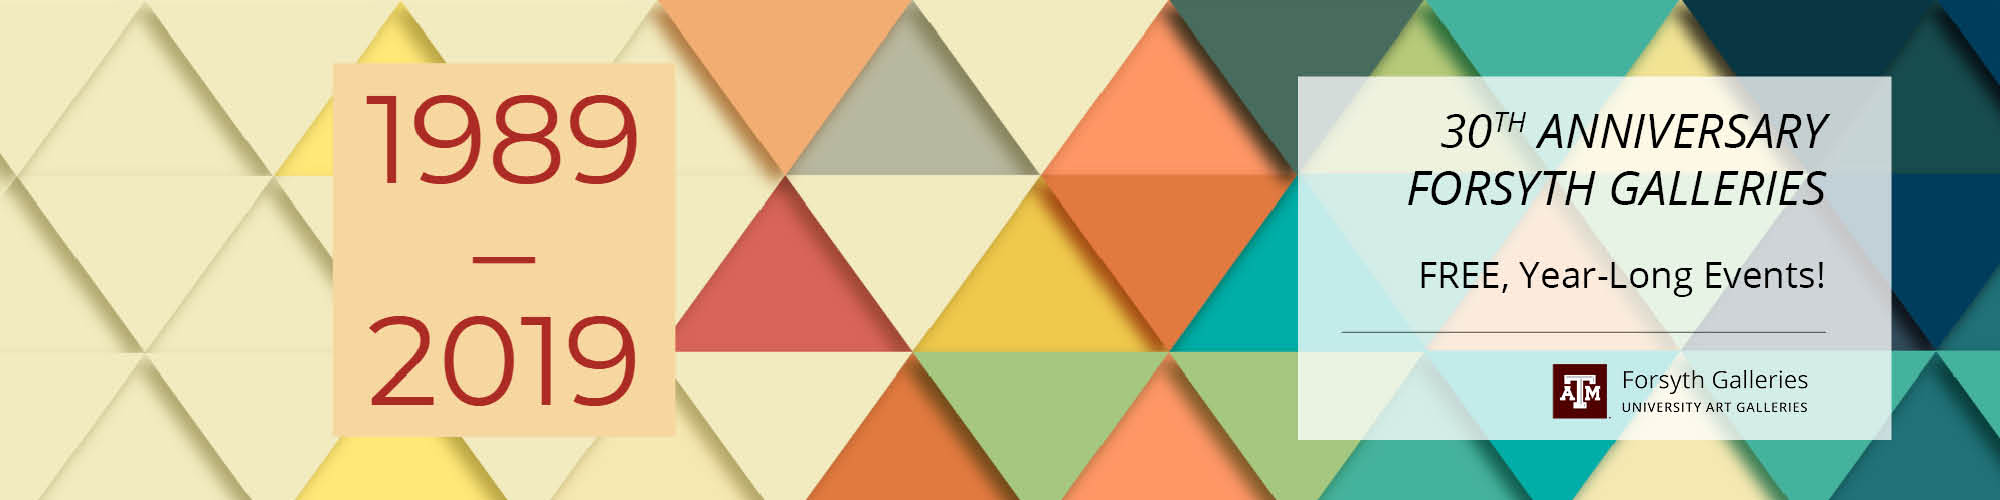 Colorful triangles in peach, teal, blue, navy, forest green, yellow, and pink